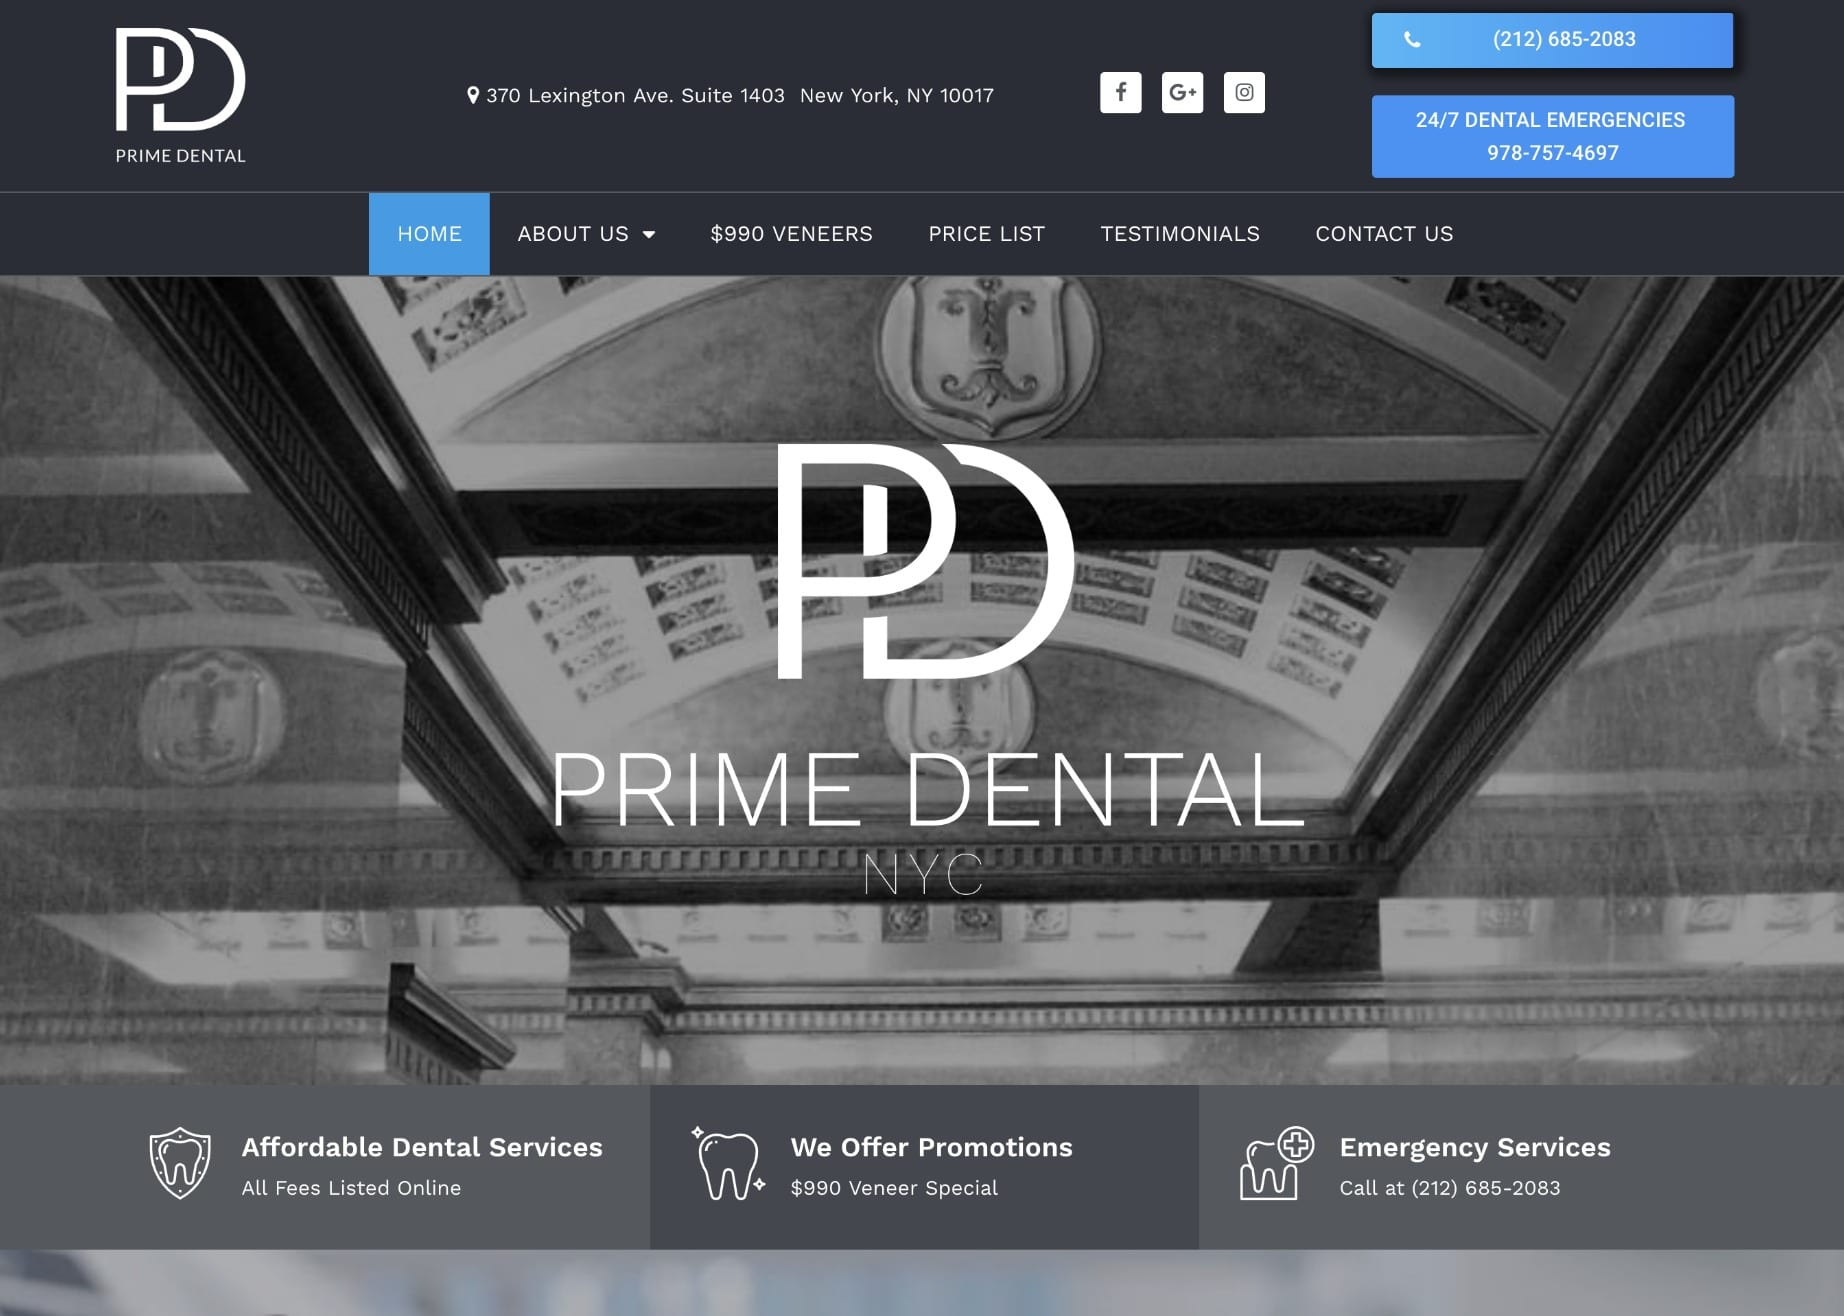 Prime dental website of new york screen shot.